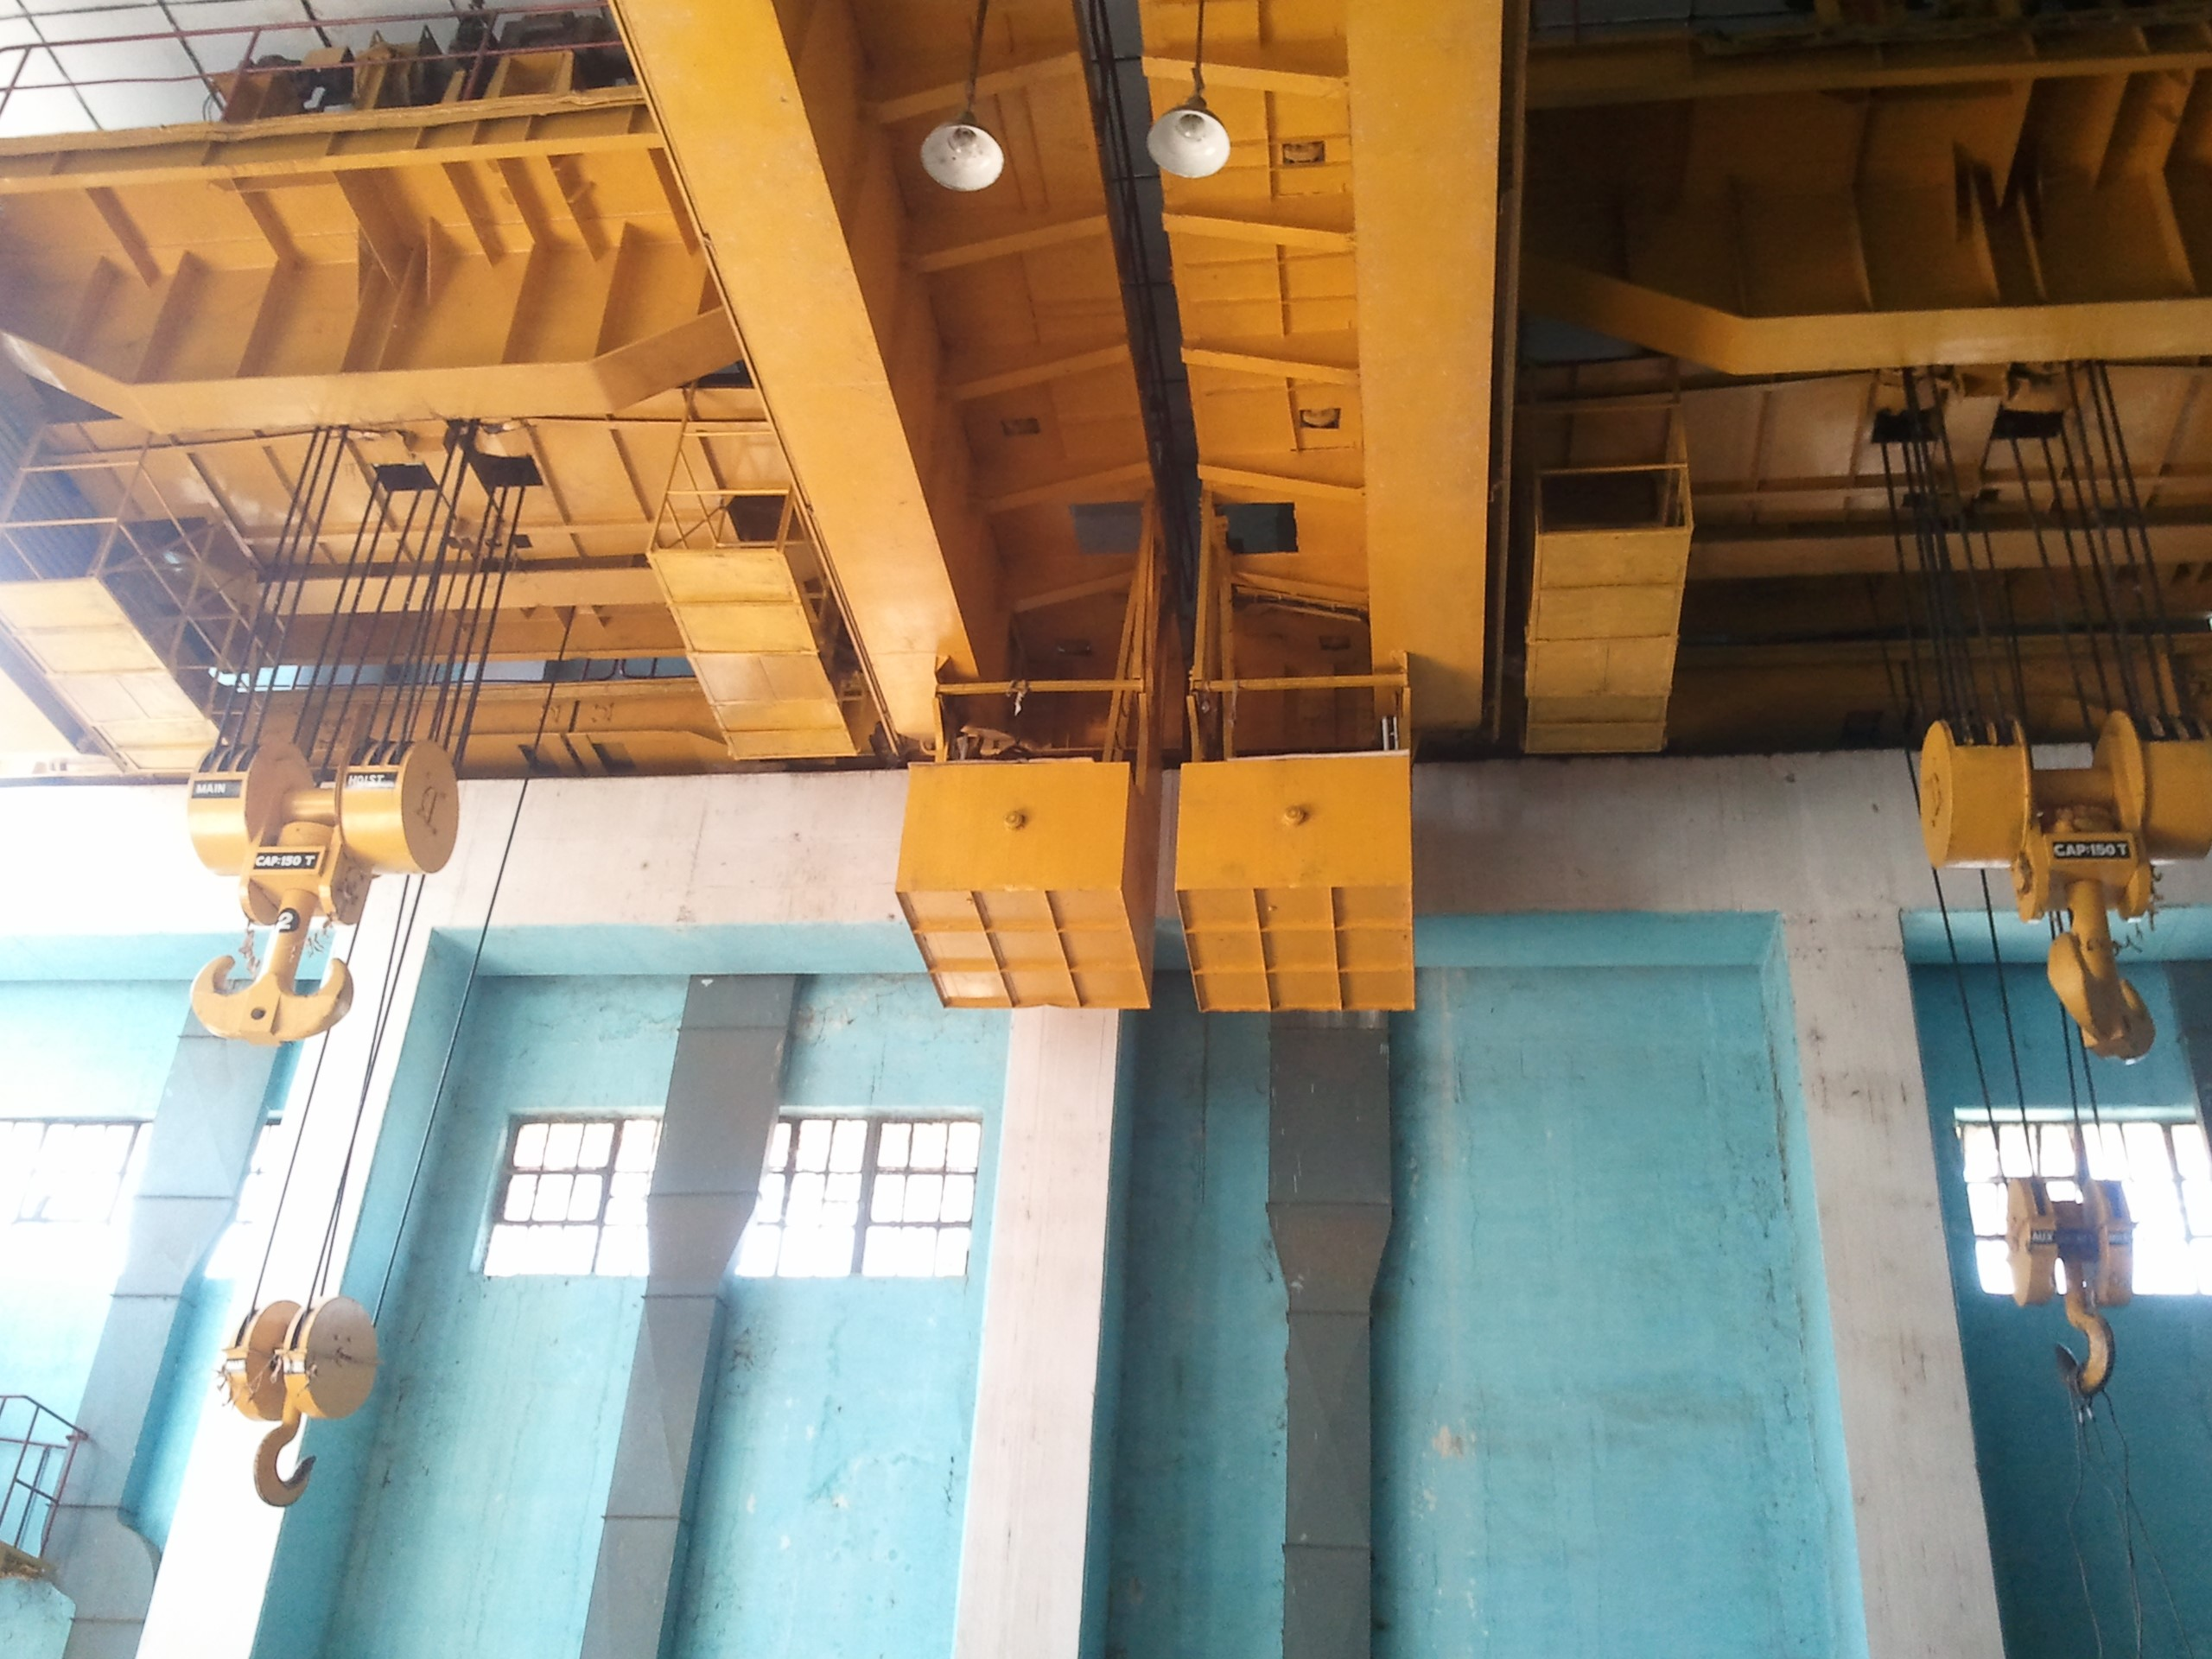 Complete Overhauling and repairing of 150/30 Tons EOT Cranes 02 Nos., including supply/ replacement required spares at Hydro Power Station, Uka